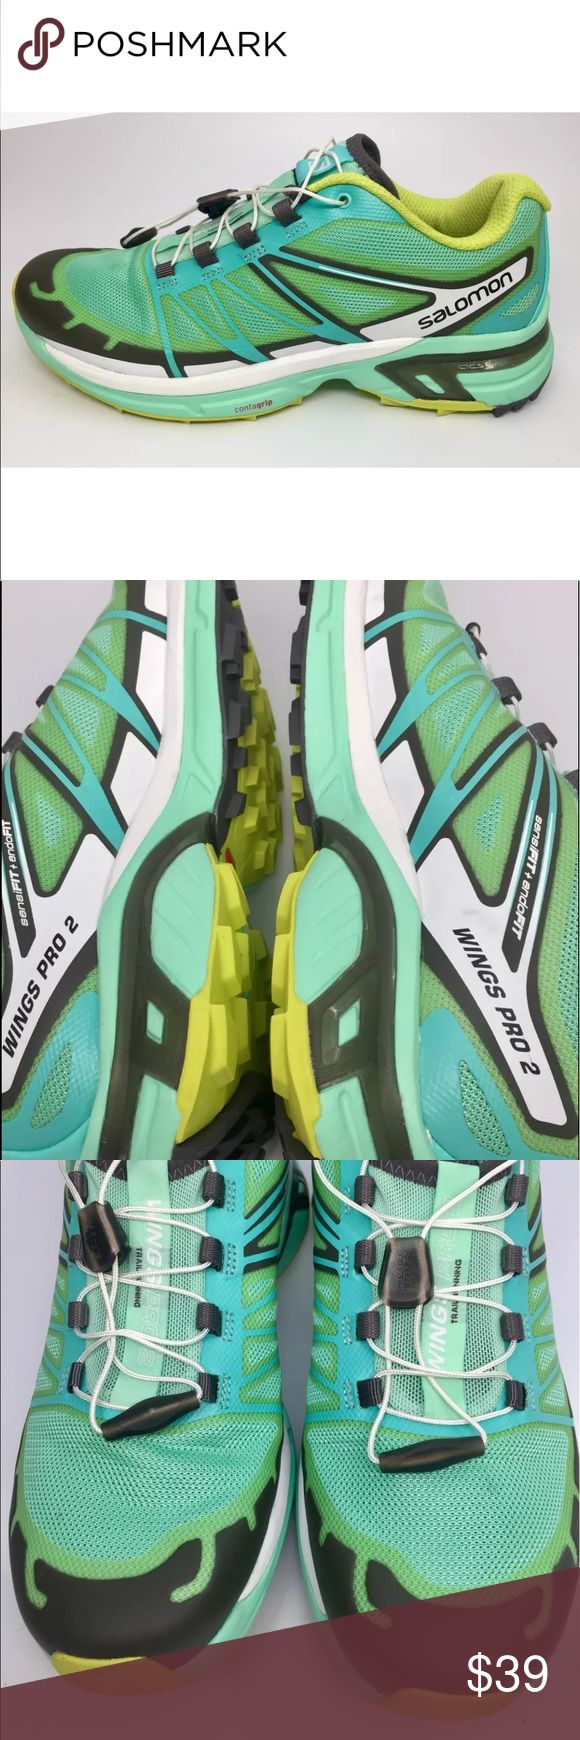 Salomon Wings Pro 2 Trail Running Shoes, size 8 Salomon Wings Pro 2 Trail Running Shoes   Women's size 8 US    Mint Condition. Worn twice Salomon Shoes Athletic Shoes